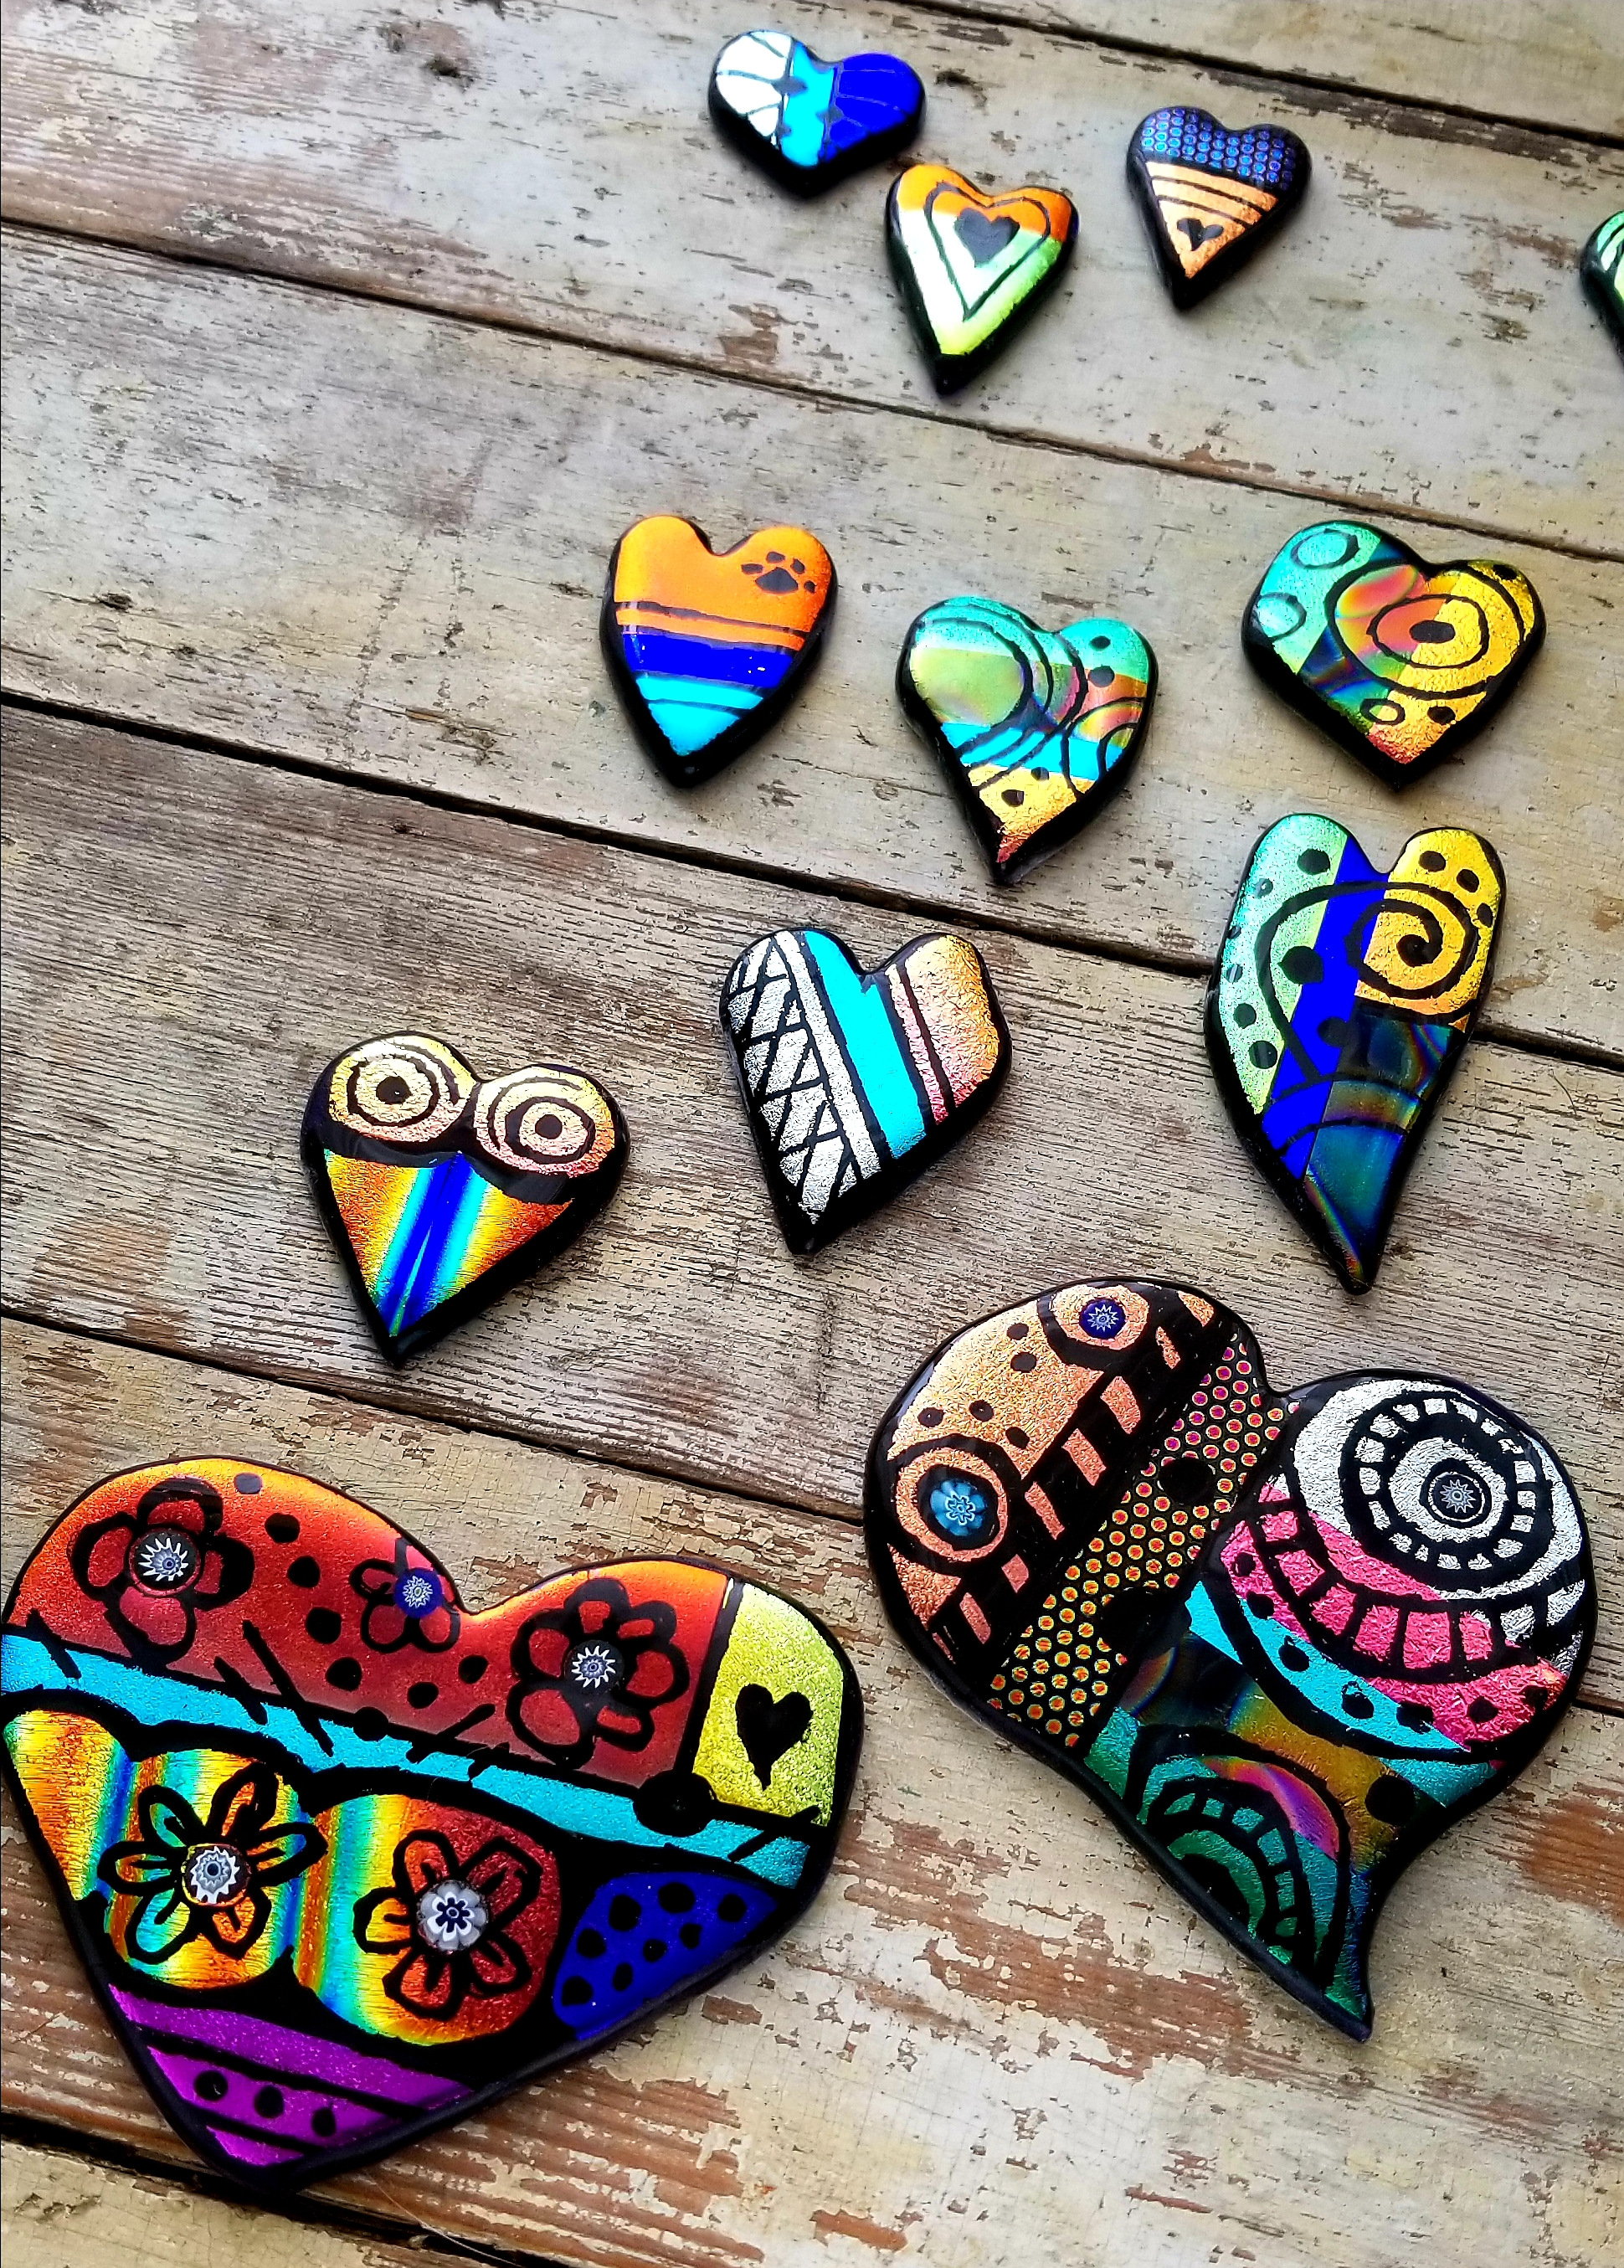 Doodle Hearts - Just because they make you feel good